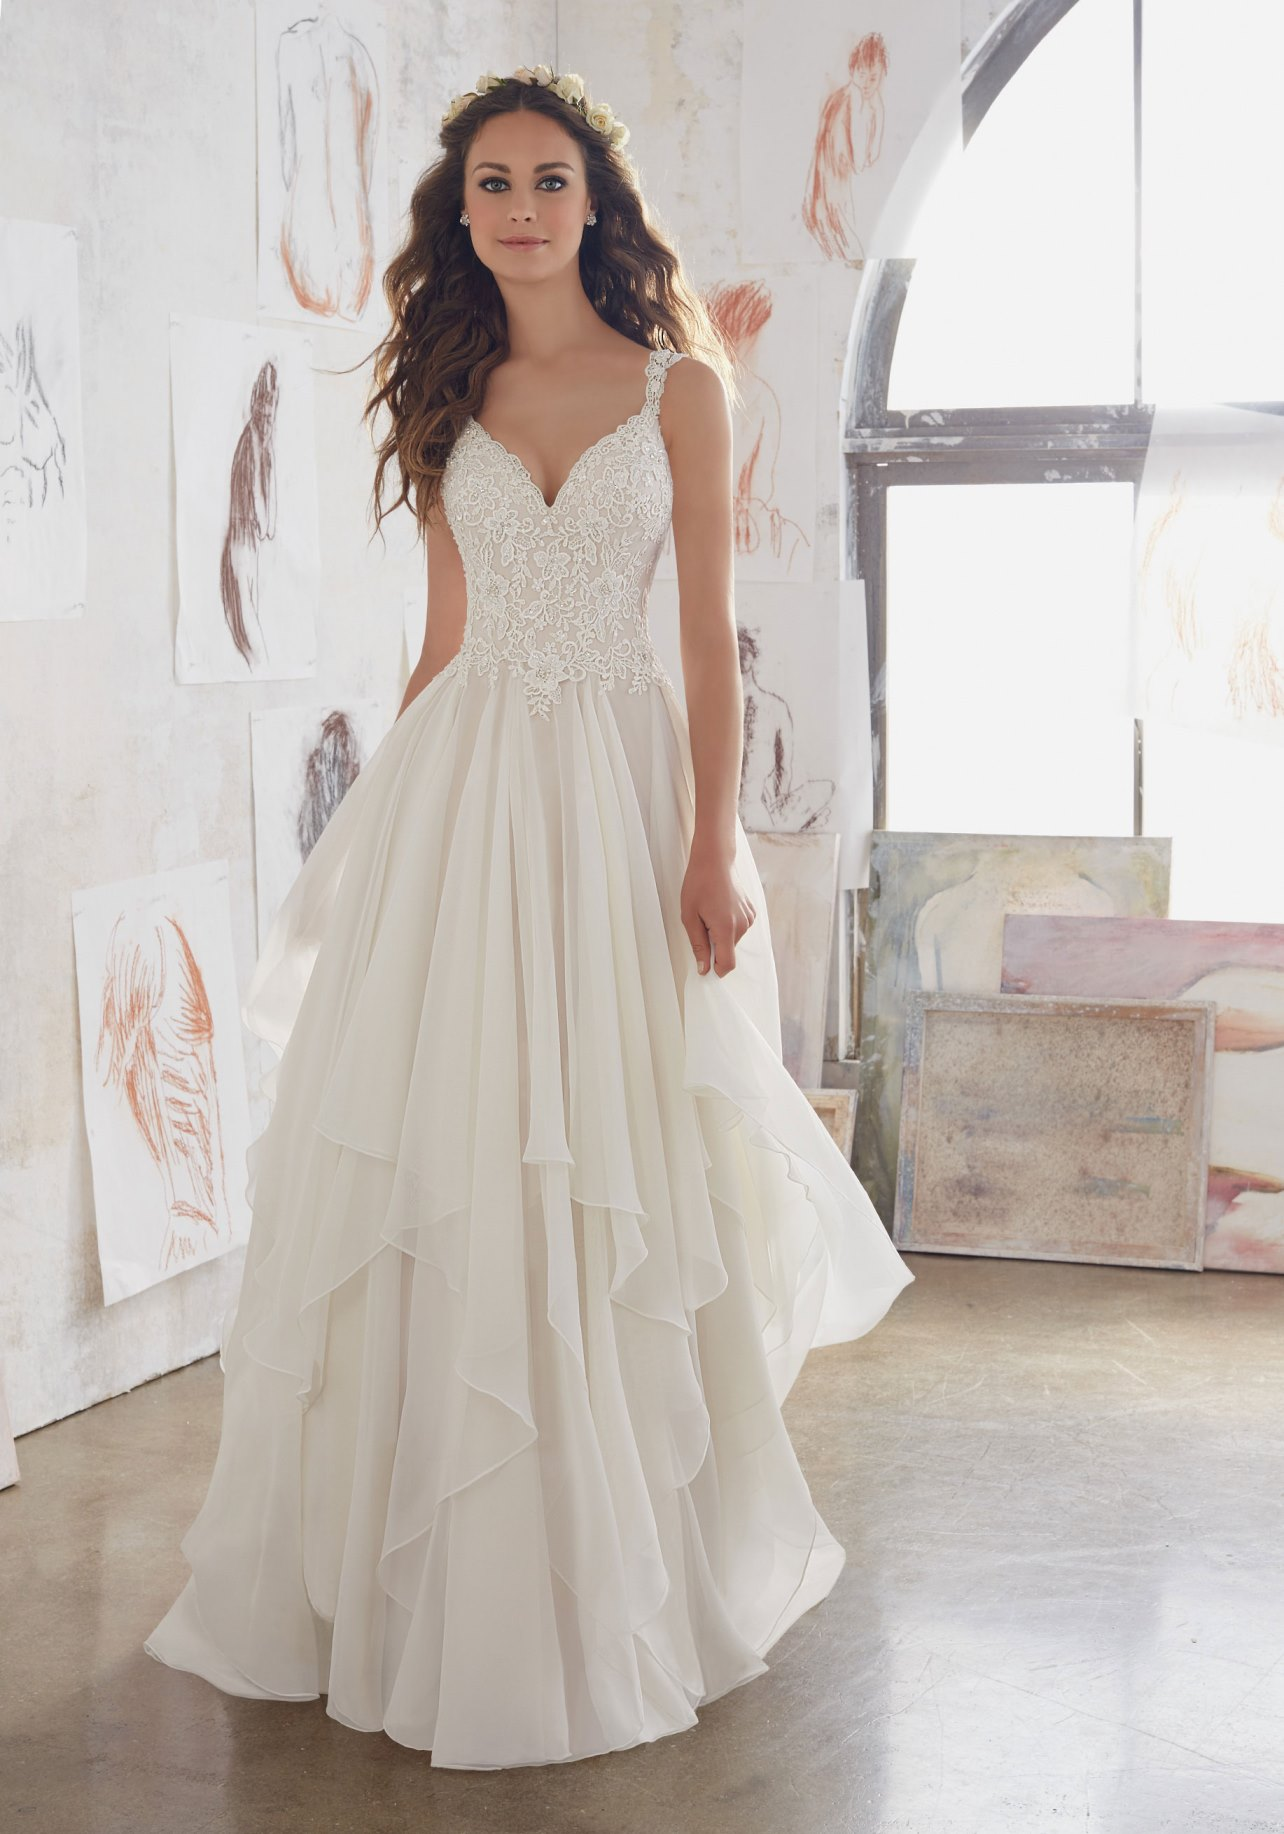 How to identify your bridal style based on your personal style